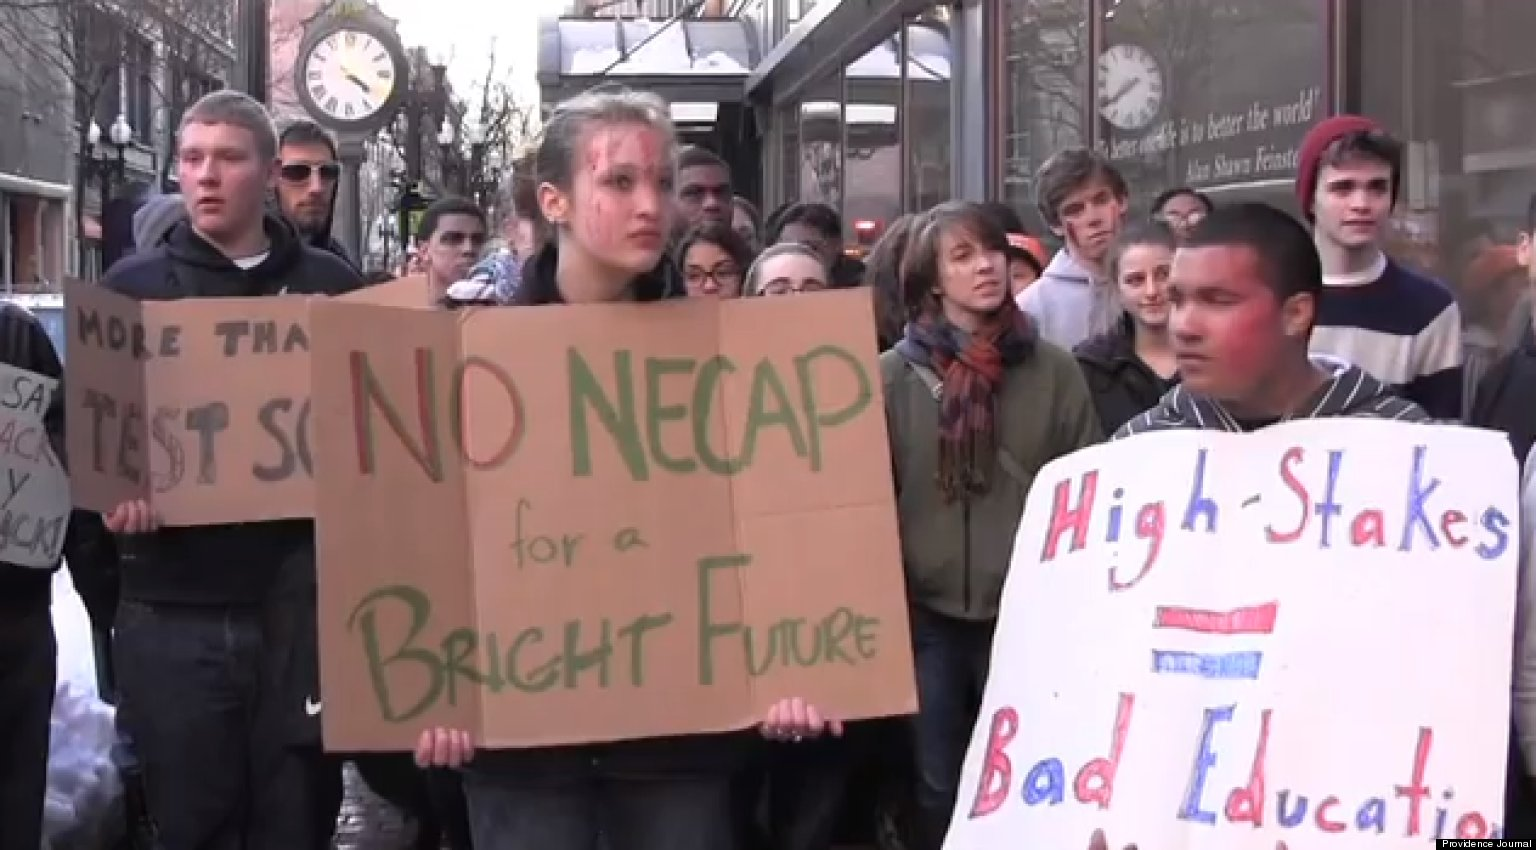 """Students holding hand-made signs, reading """"No NECAP for a bright future"""" and """"High Stakes = Bad Education"""""""